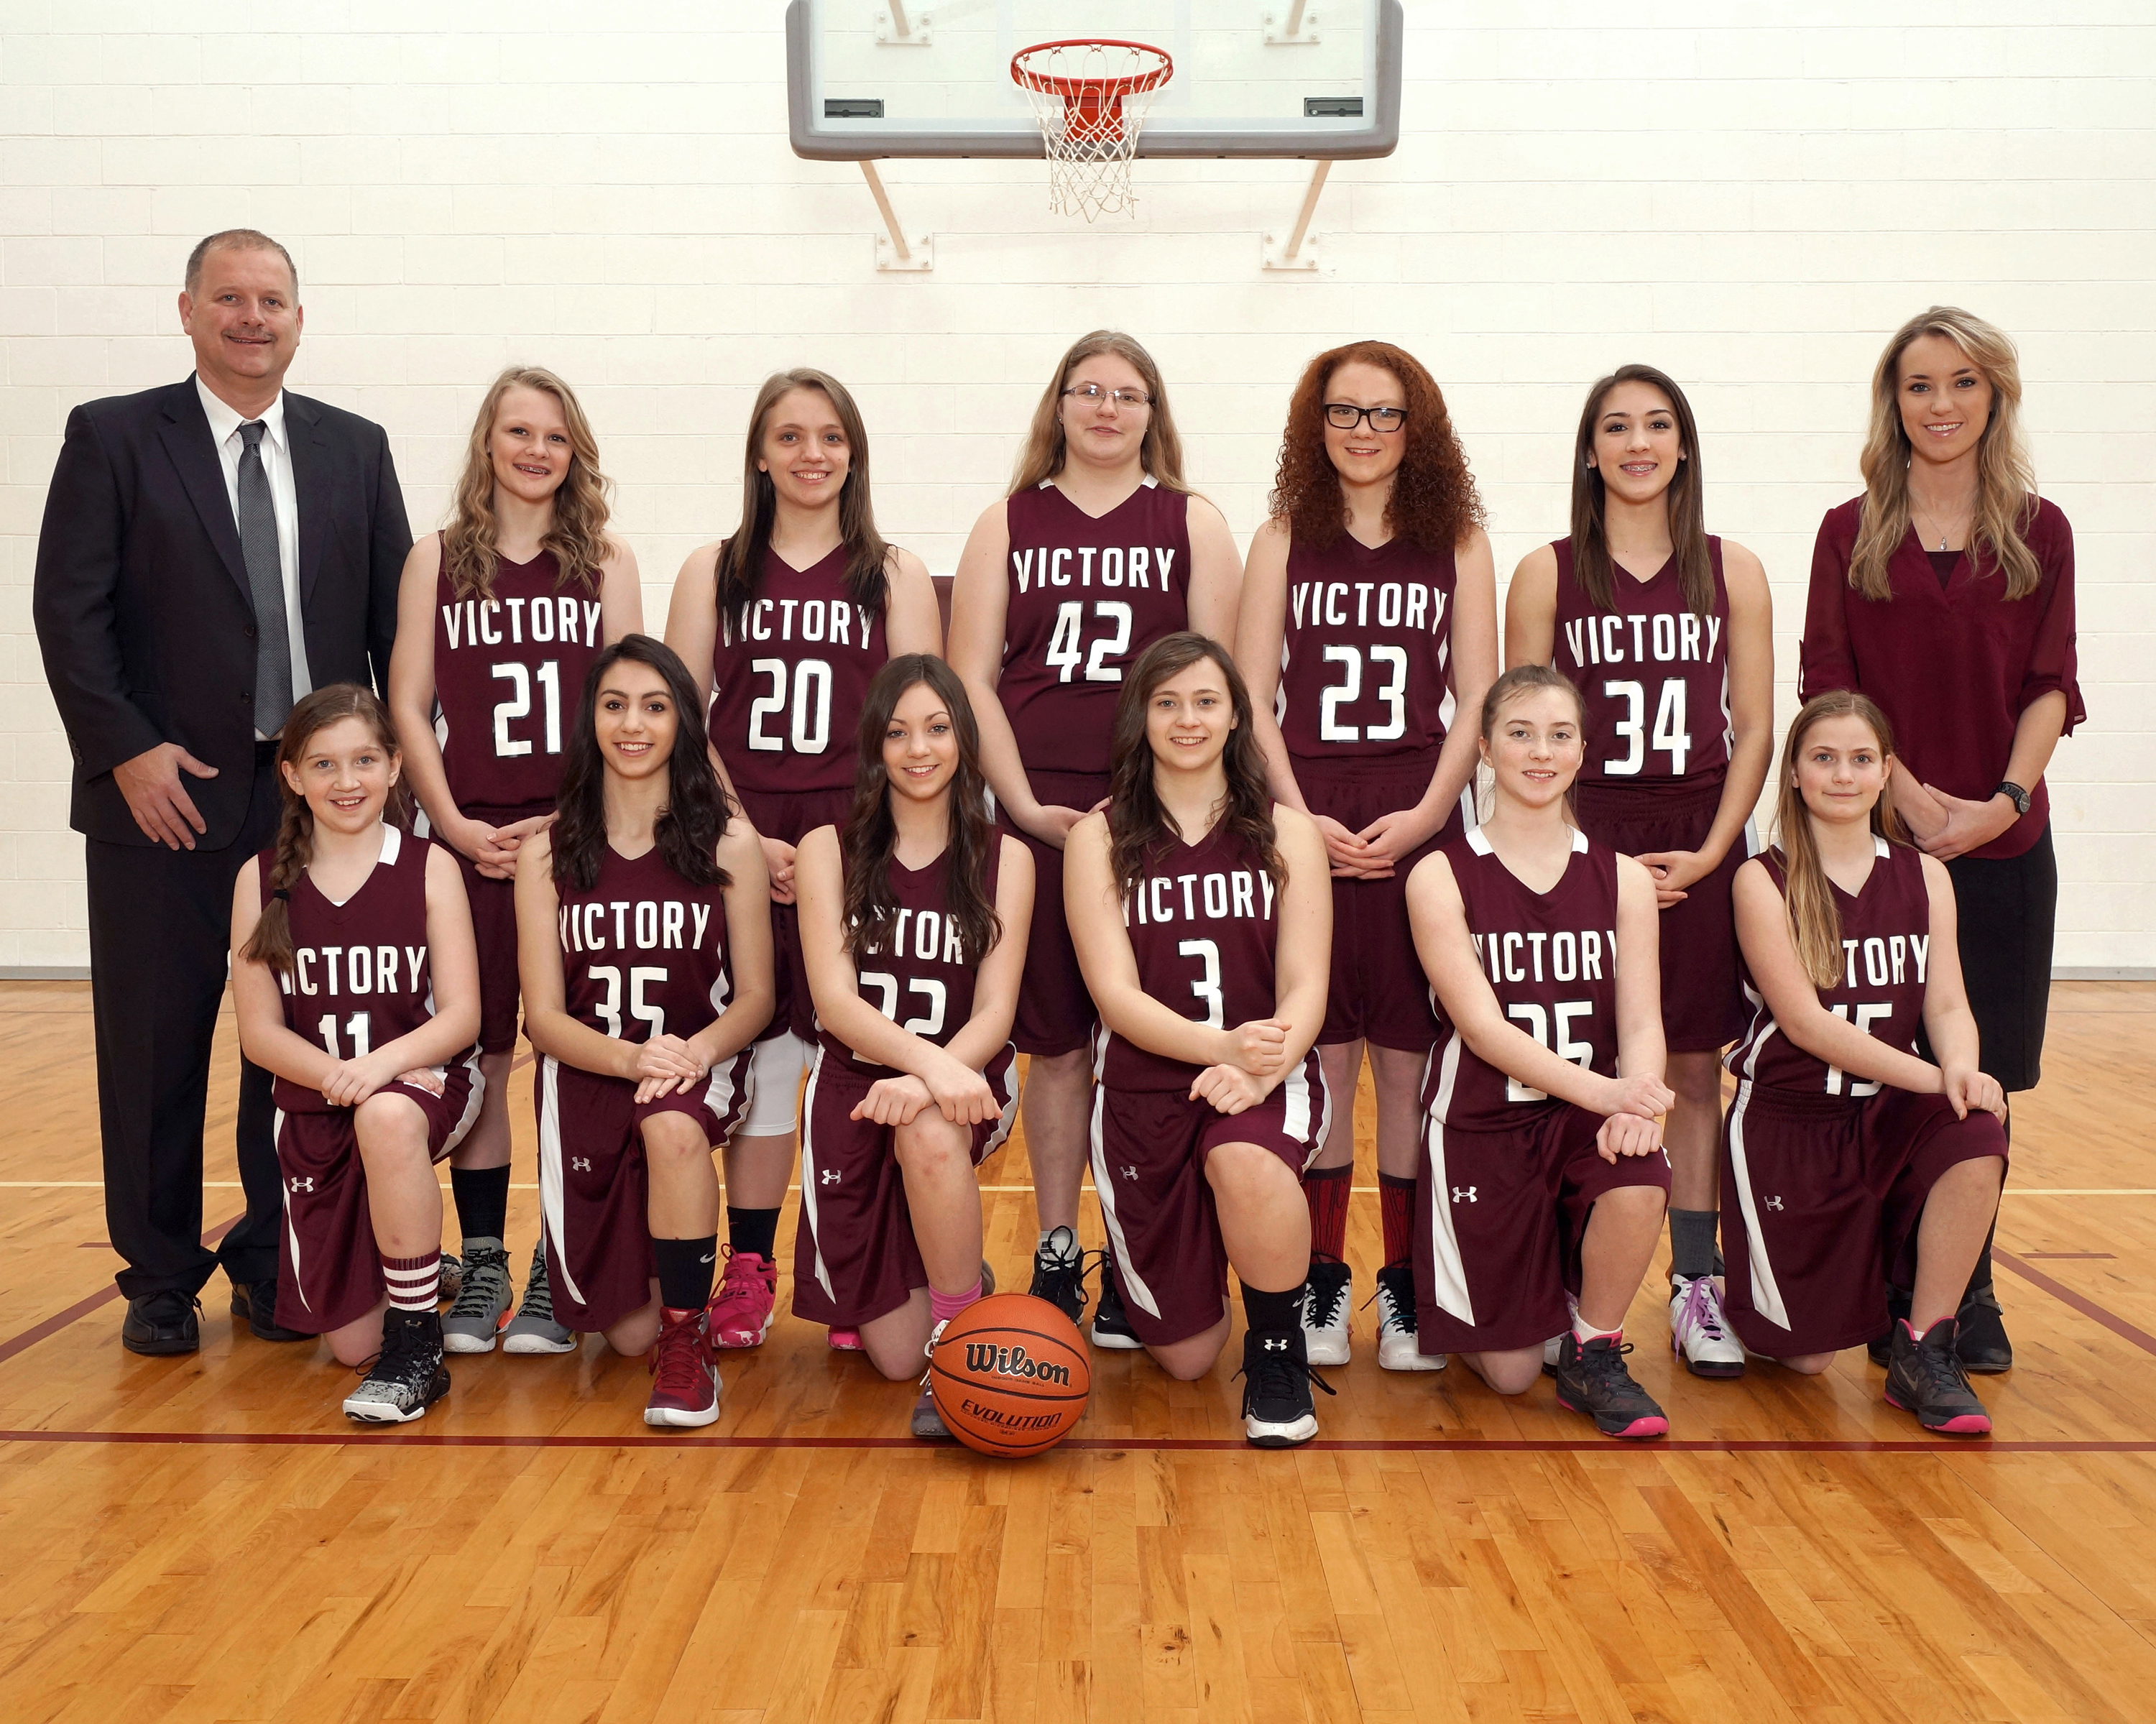 Fox_GIRLS_VARSITY_BASKETSBALL_GROUP640.JPG